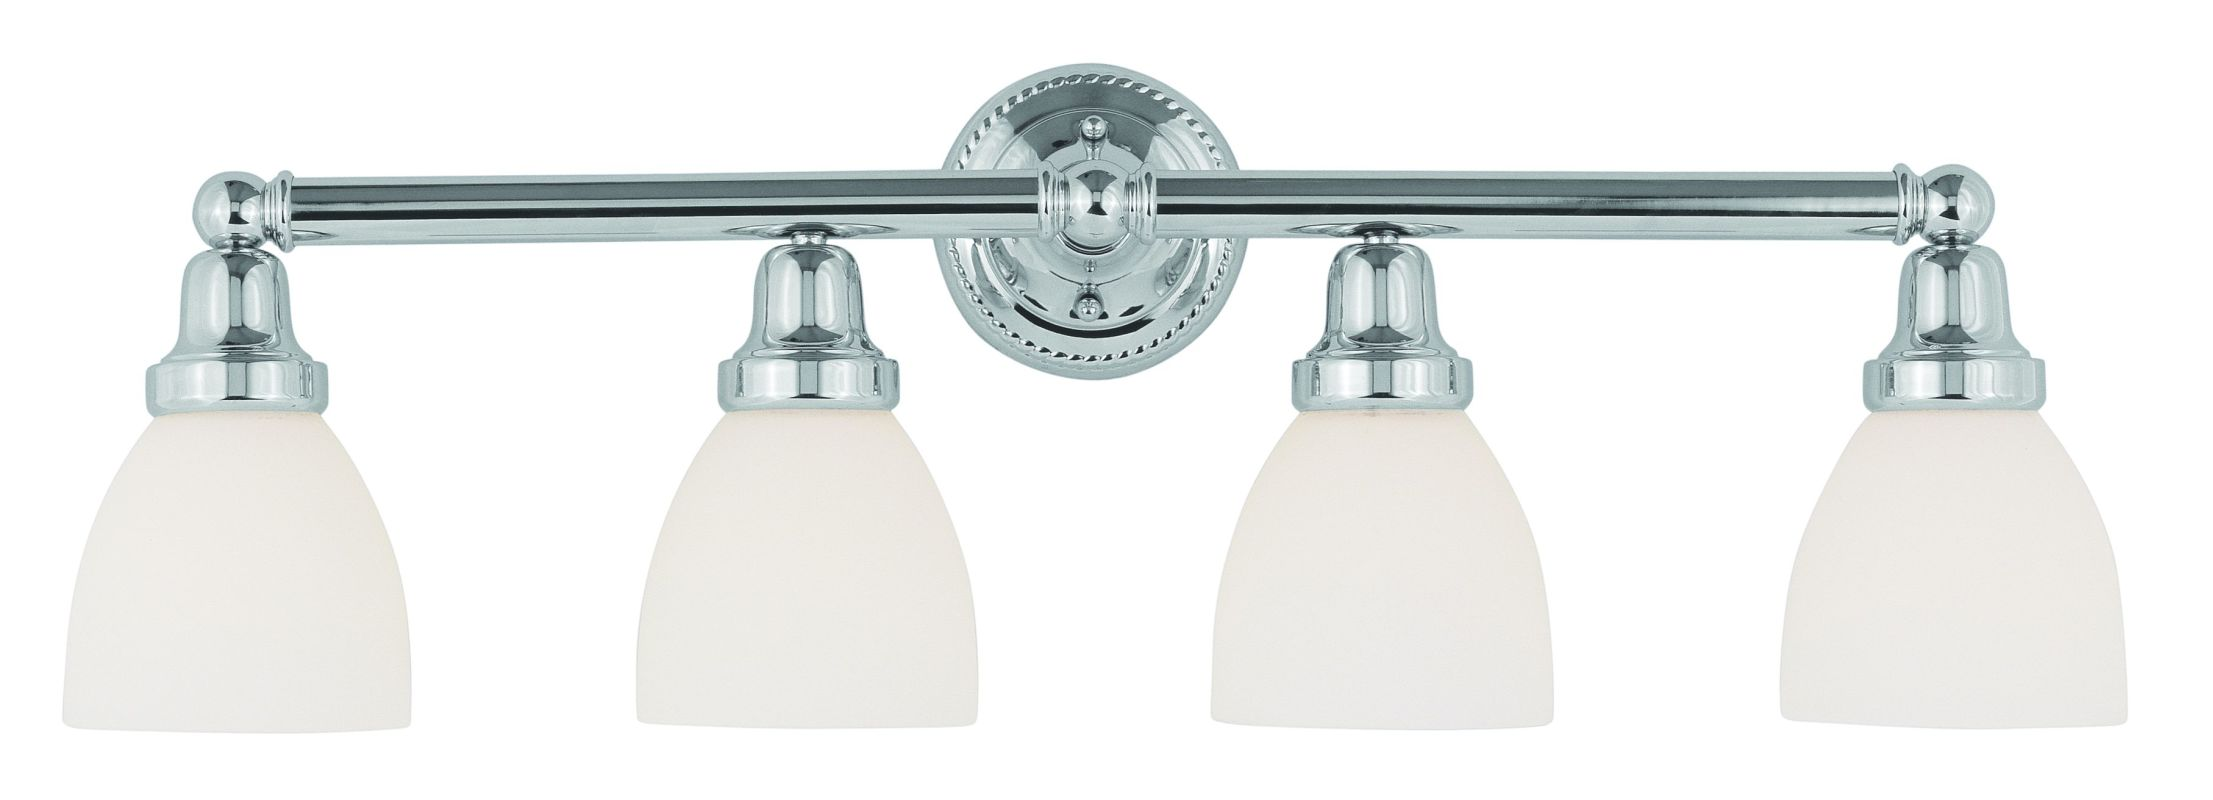 Livex Lighting 1024 Classic 4 Light Bathroom Vanity Light Chrome